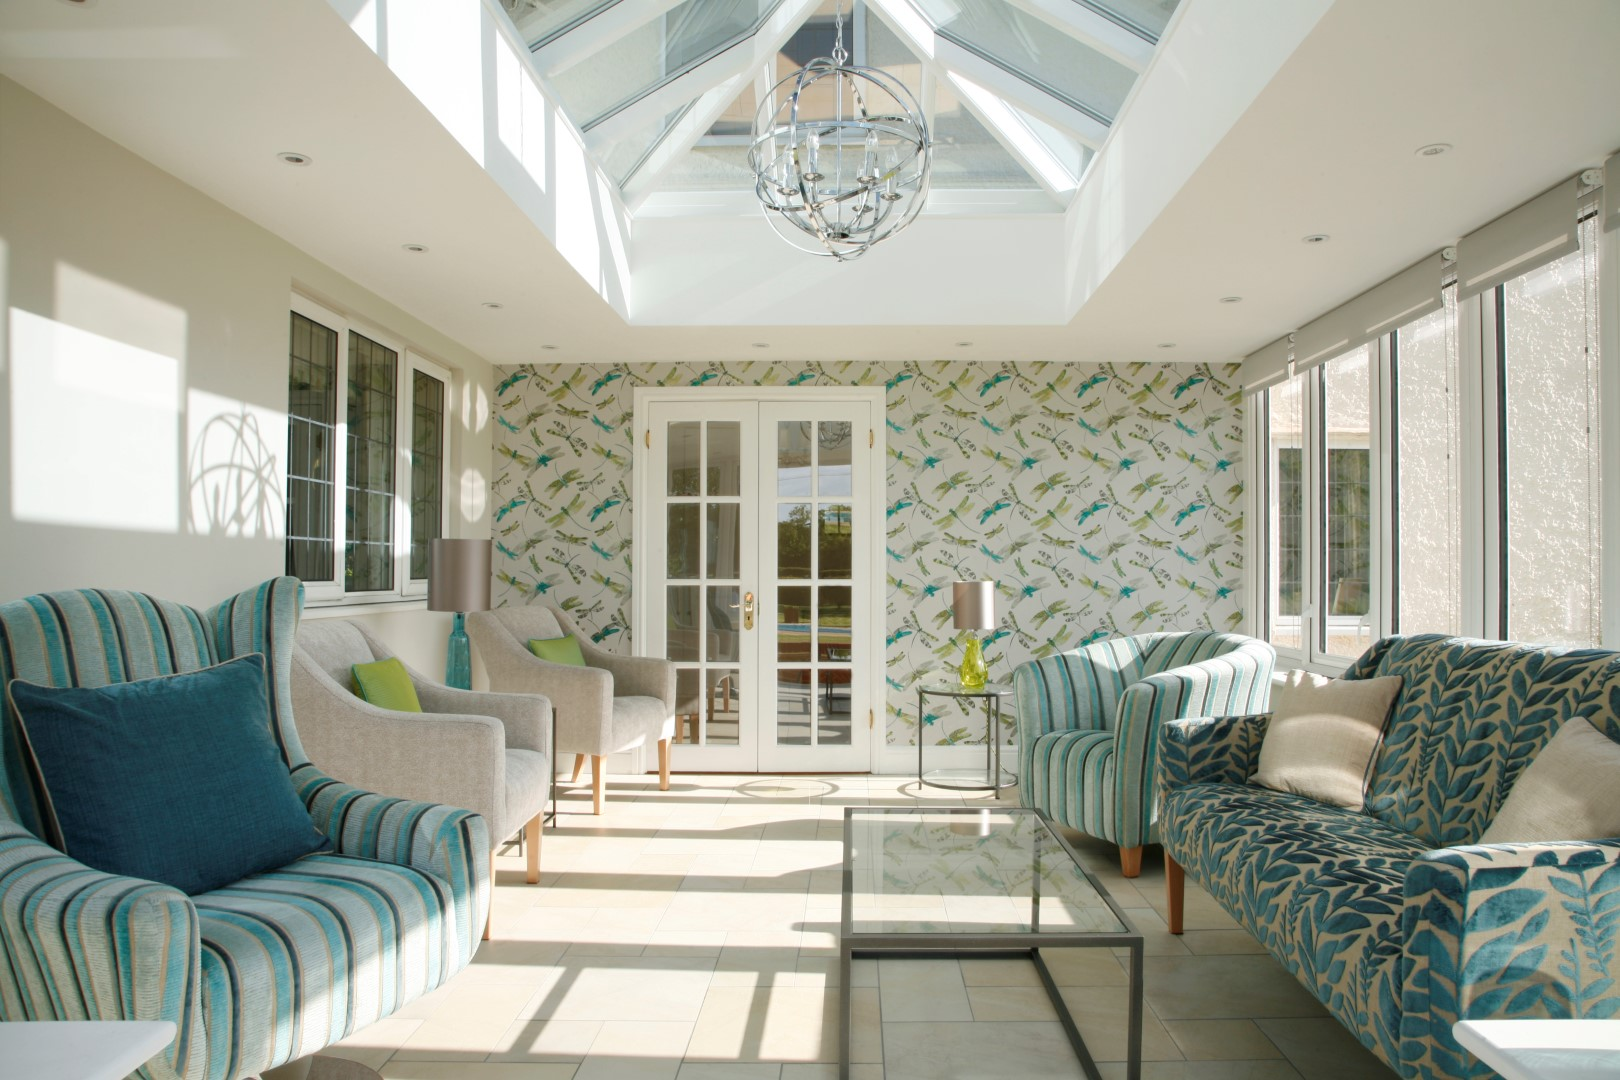 Jenny junior interiors hertfordshire interior design for Interior desings